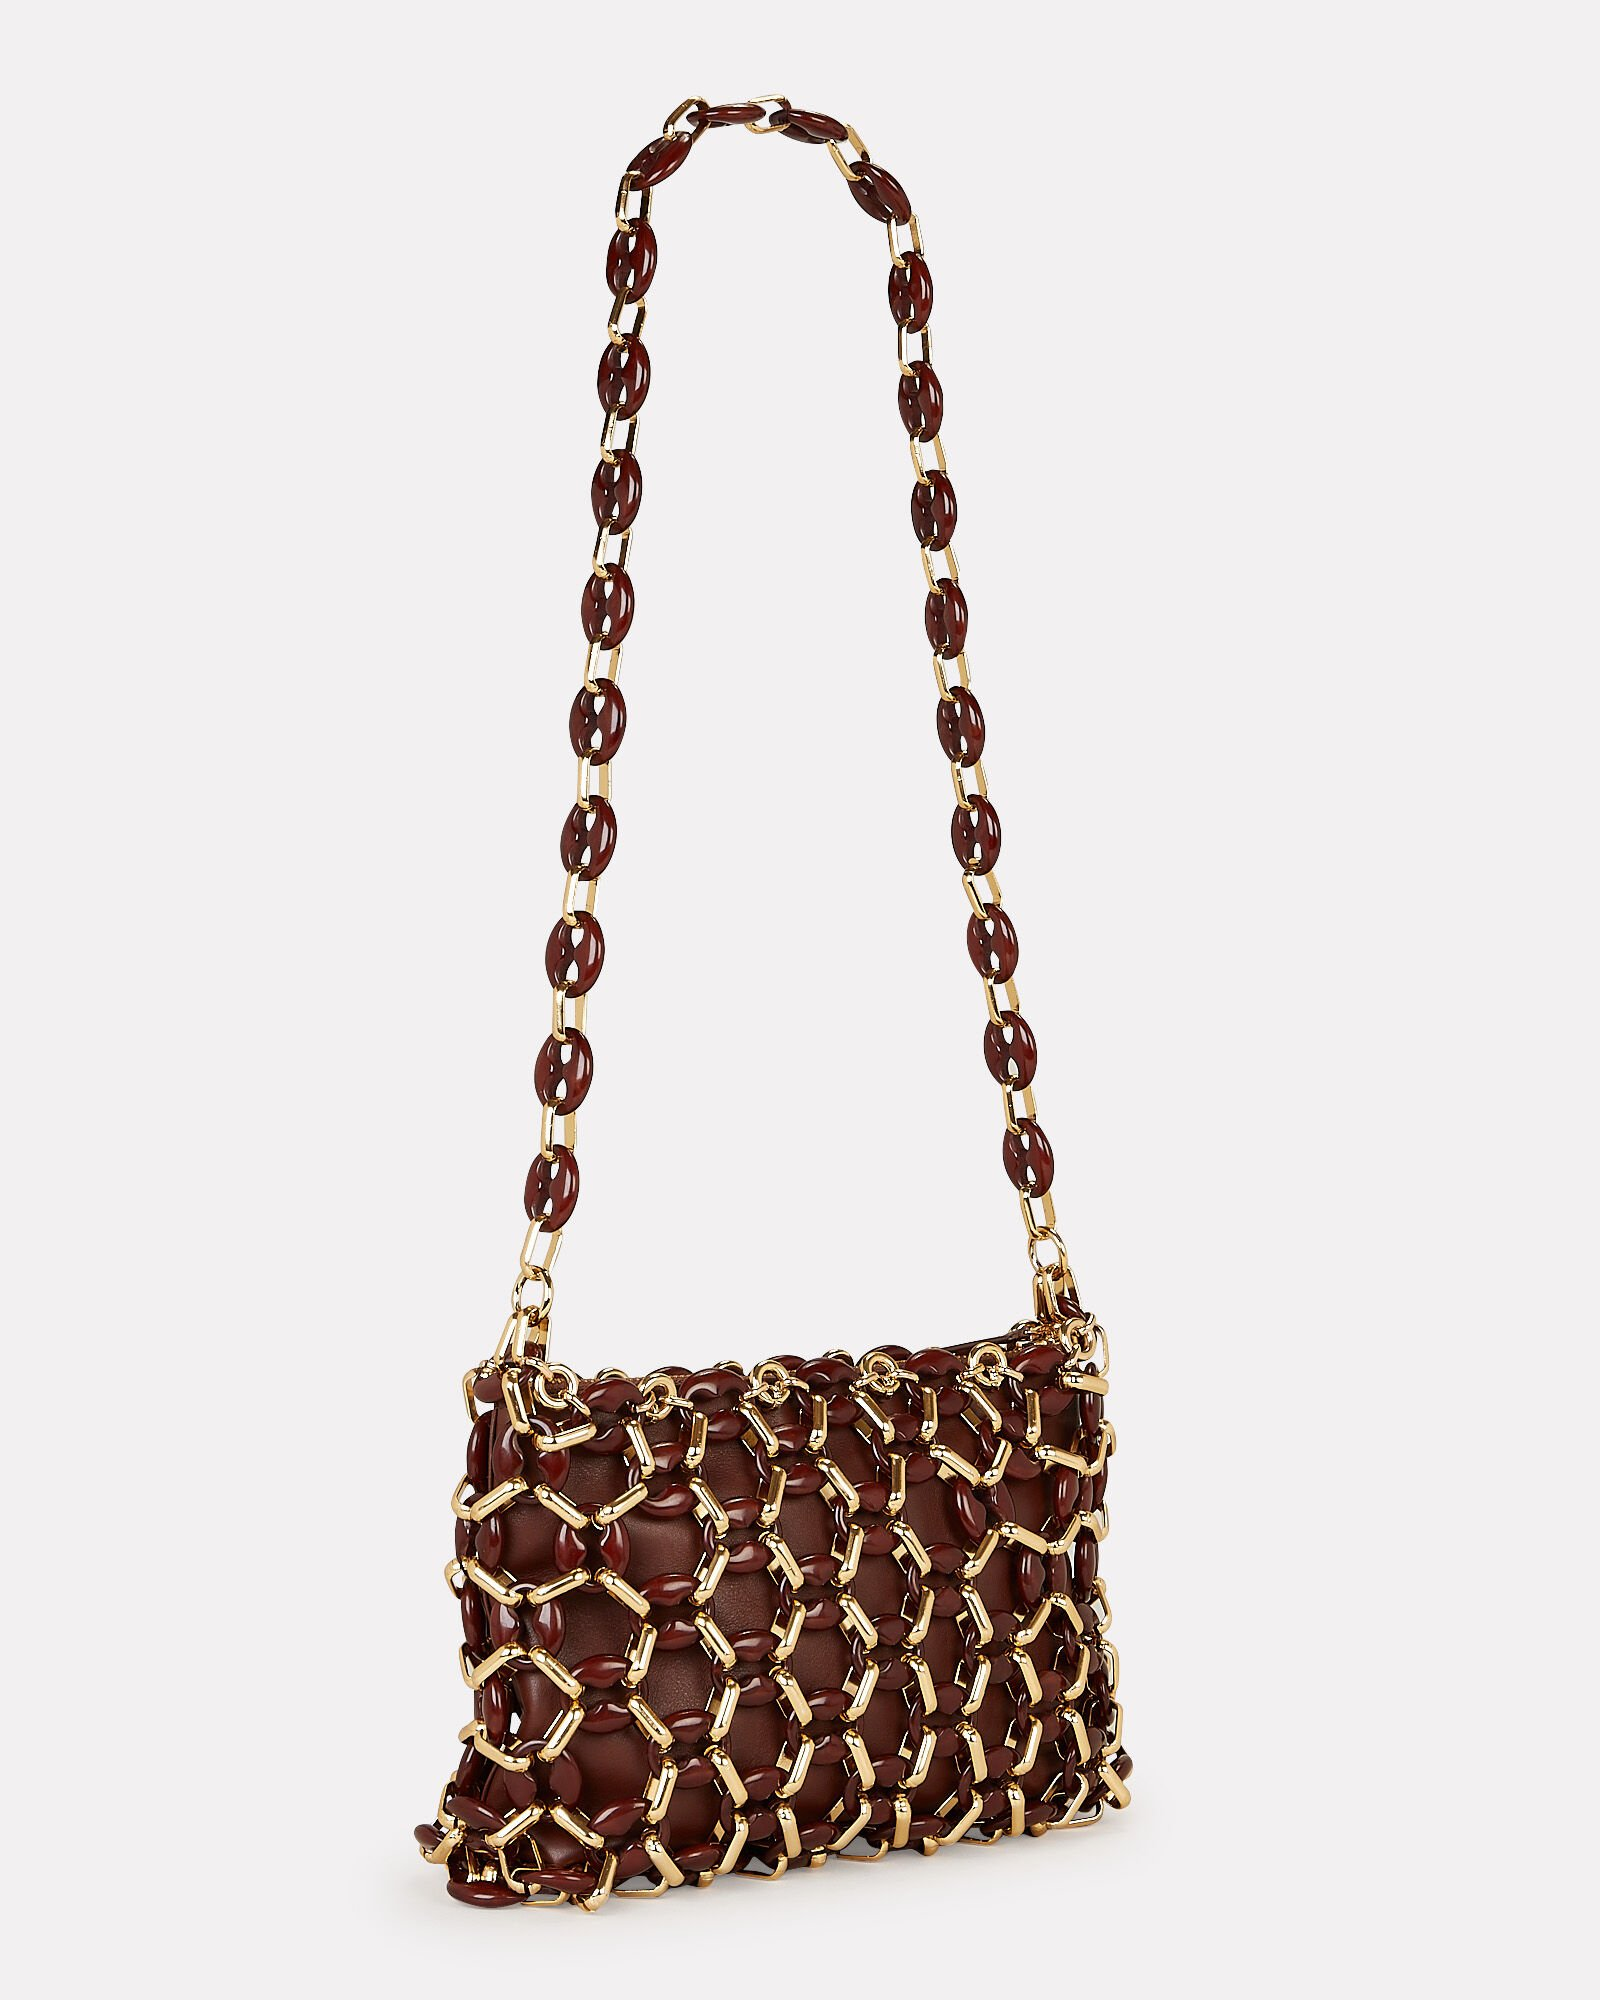 Capria Chain Leather Bag, BROWN, hi-res